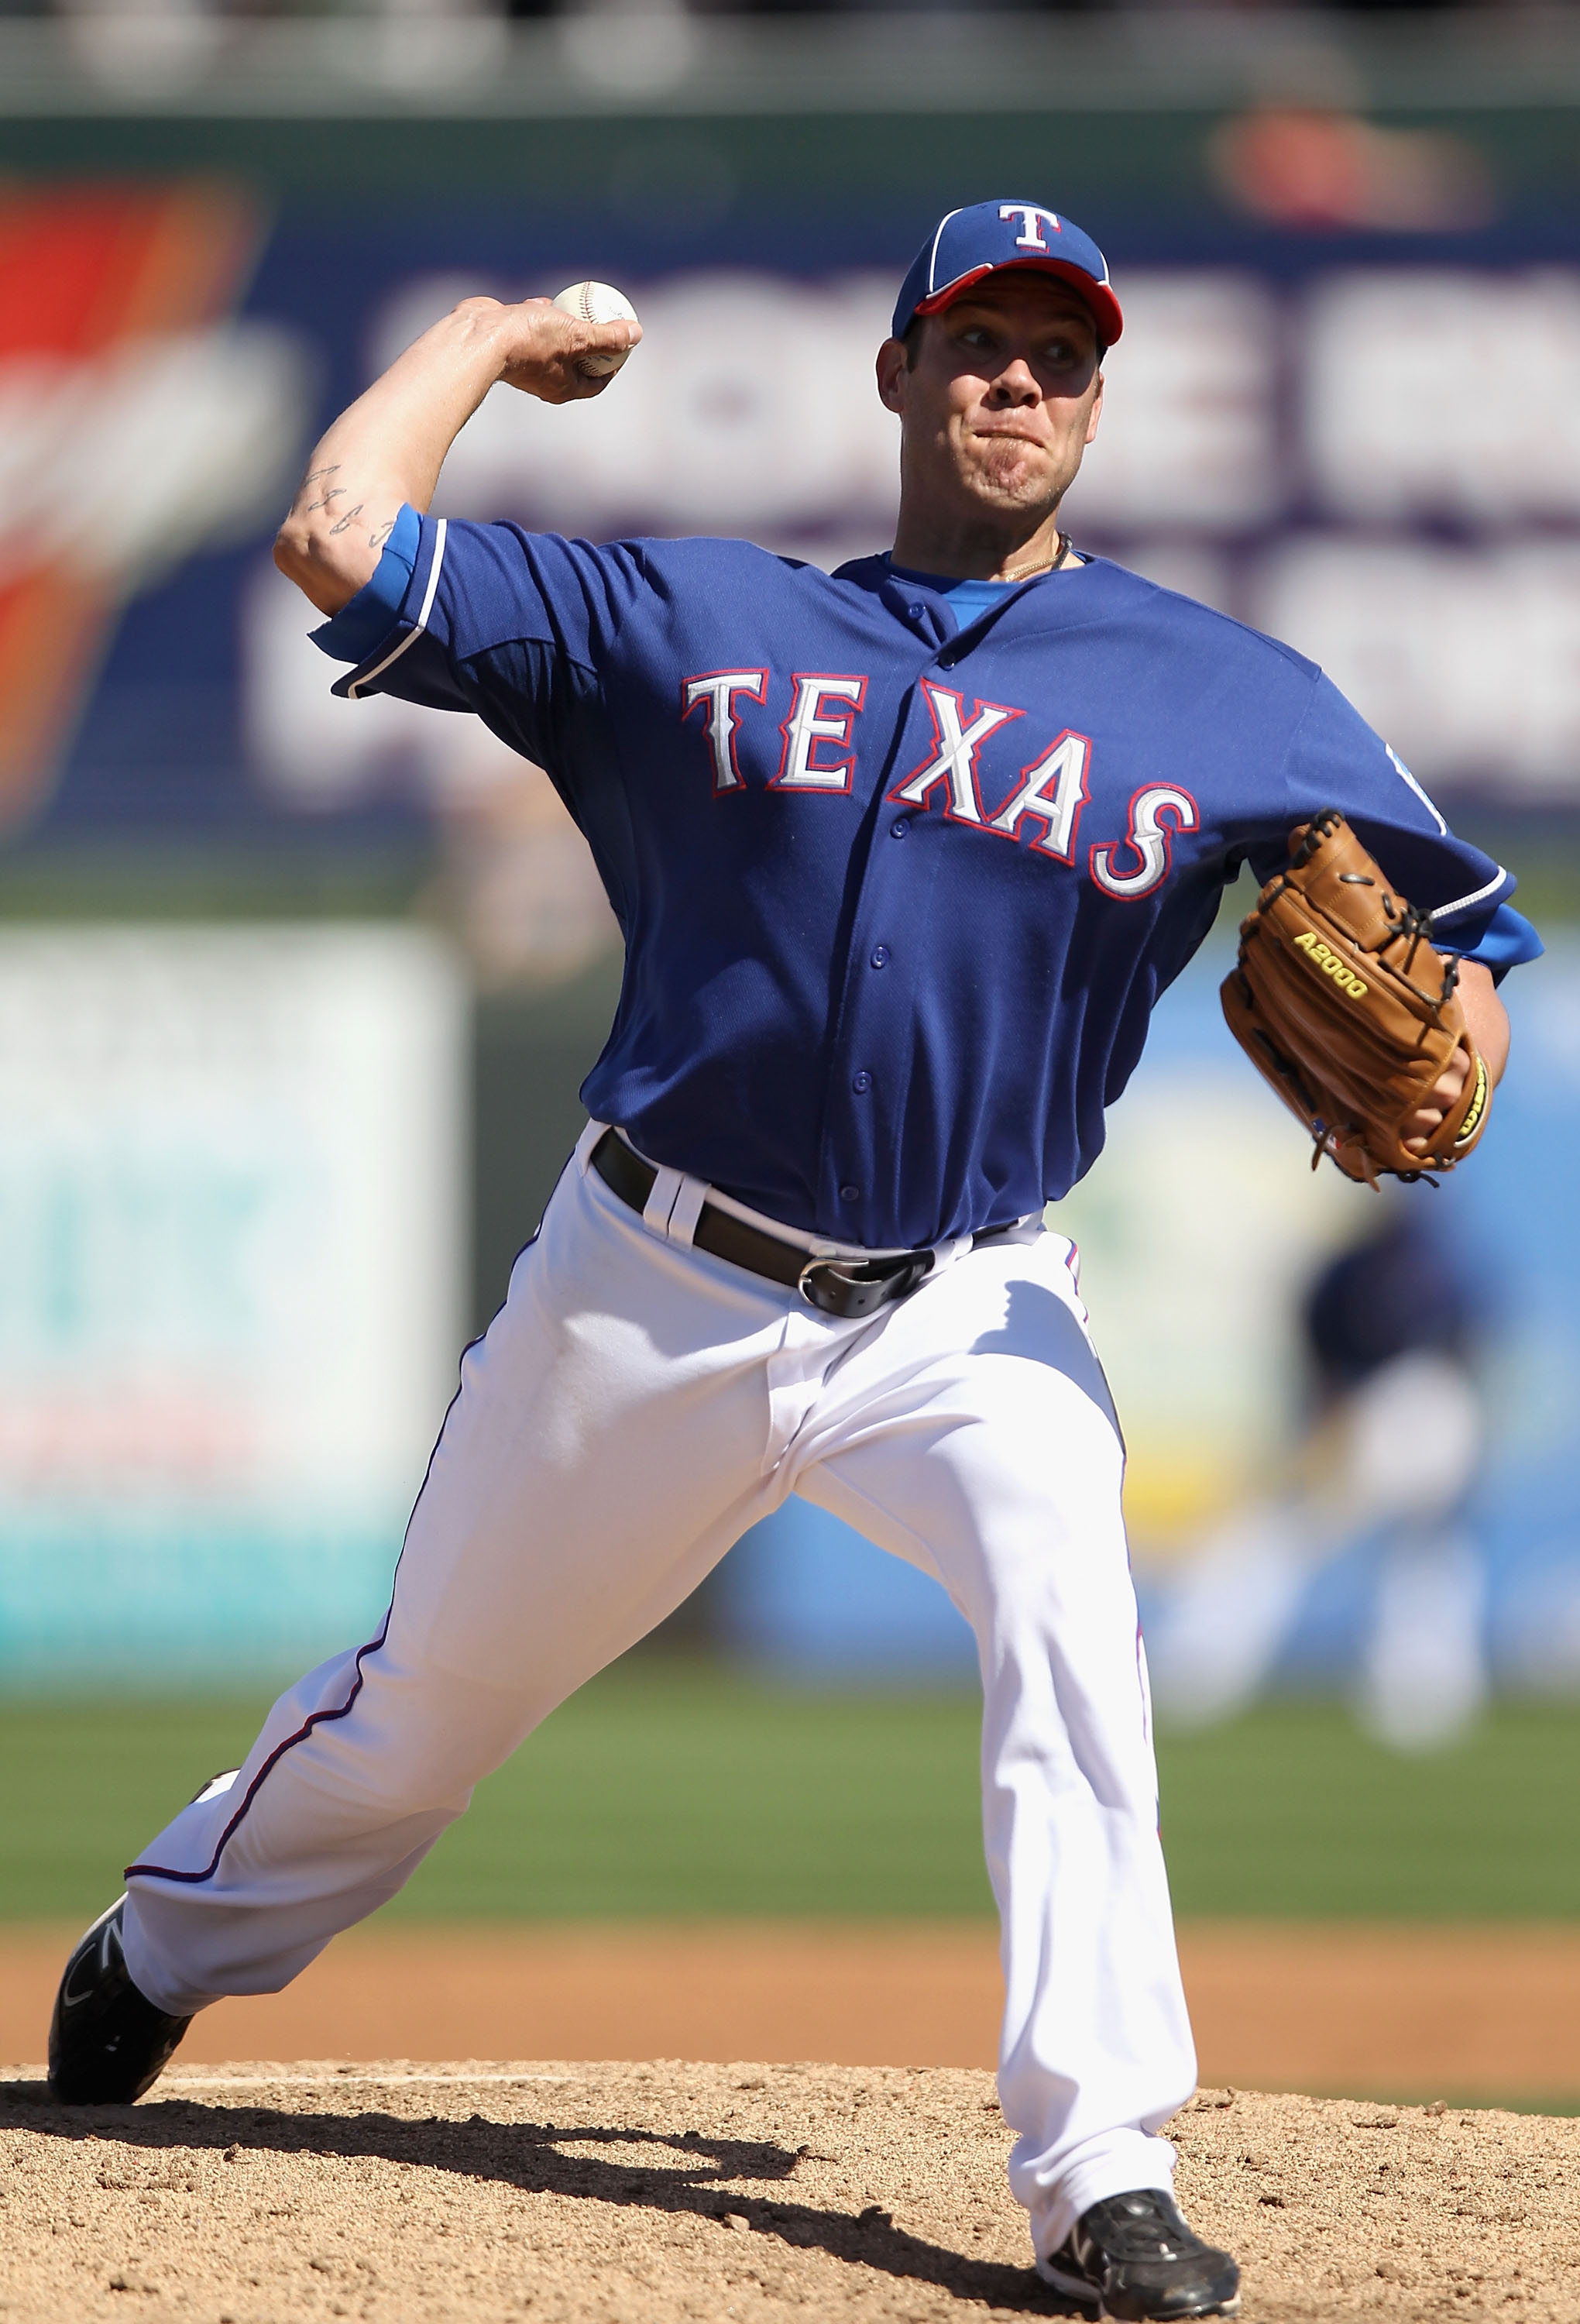 SURPRISE, AZ - MARCH 11:  Starting pitcher Colby Lewis #48 of the Texas Rangers pitches against the Cincinnati Reds during the spring training game at Surprise Stadium on March 11, 2011 in Surprise, Arizona.  (Photo by Christian Petersen/Getty Images)